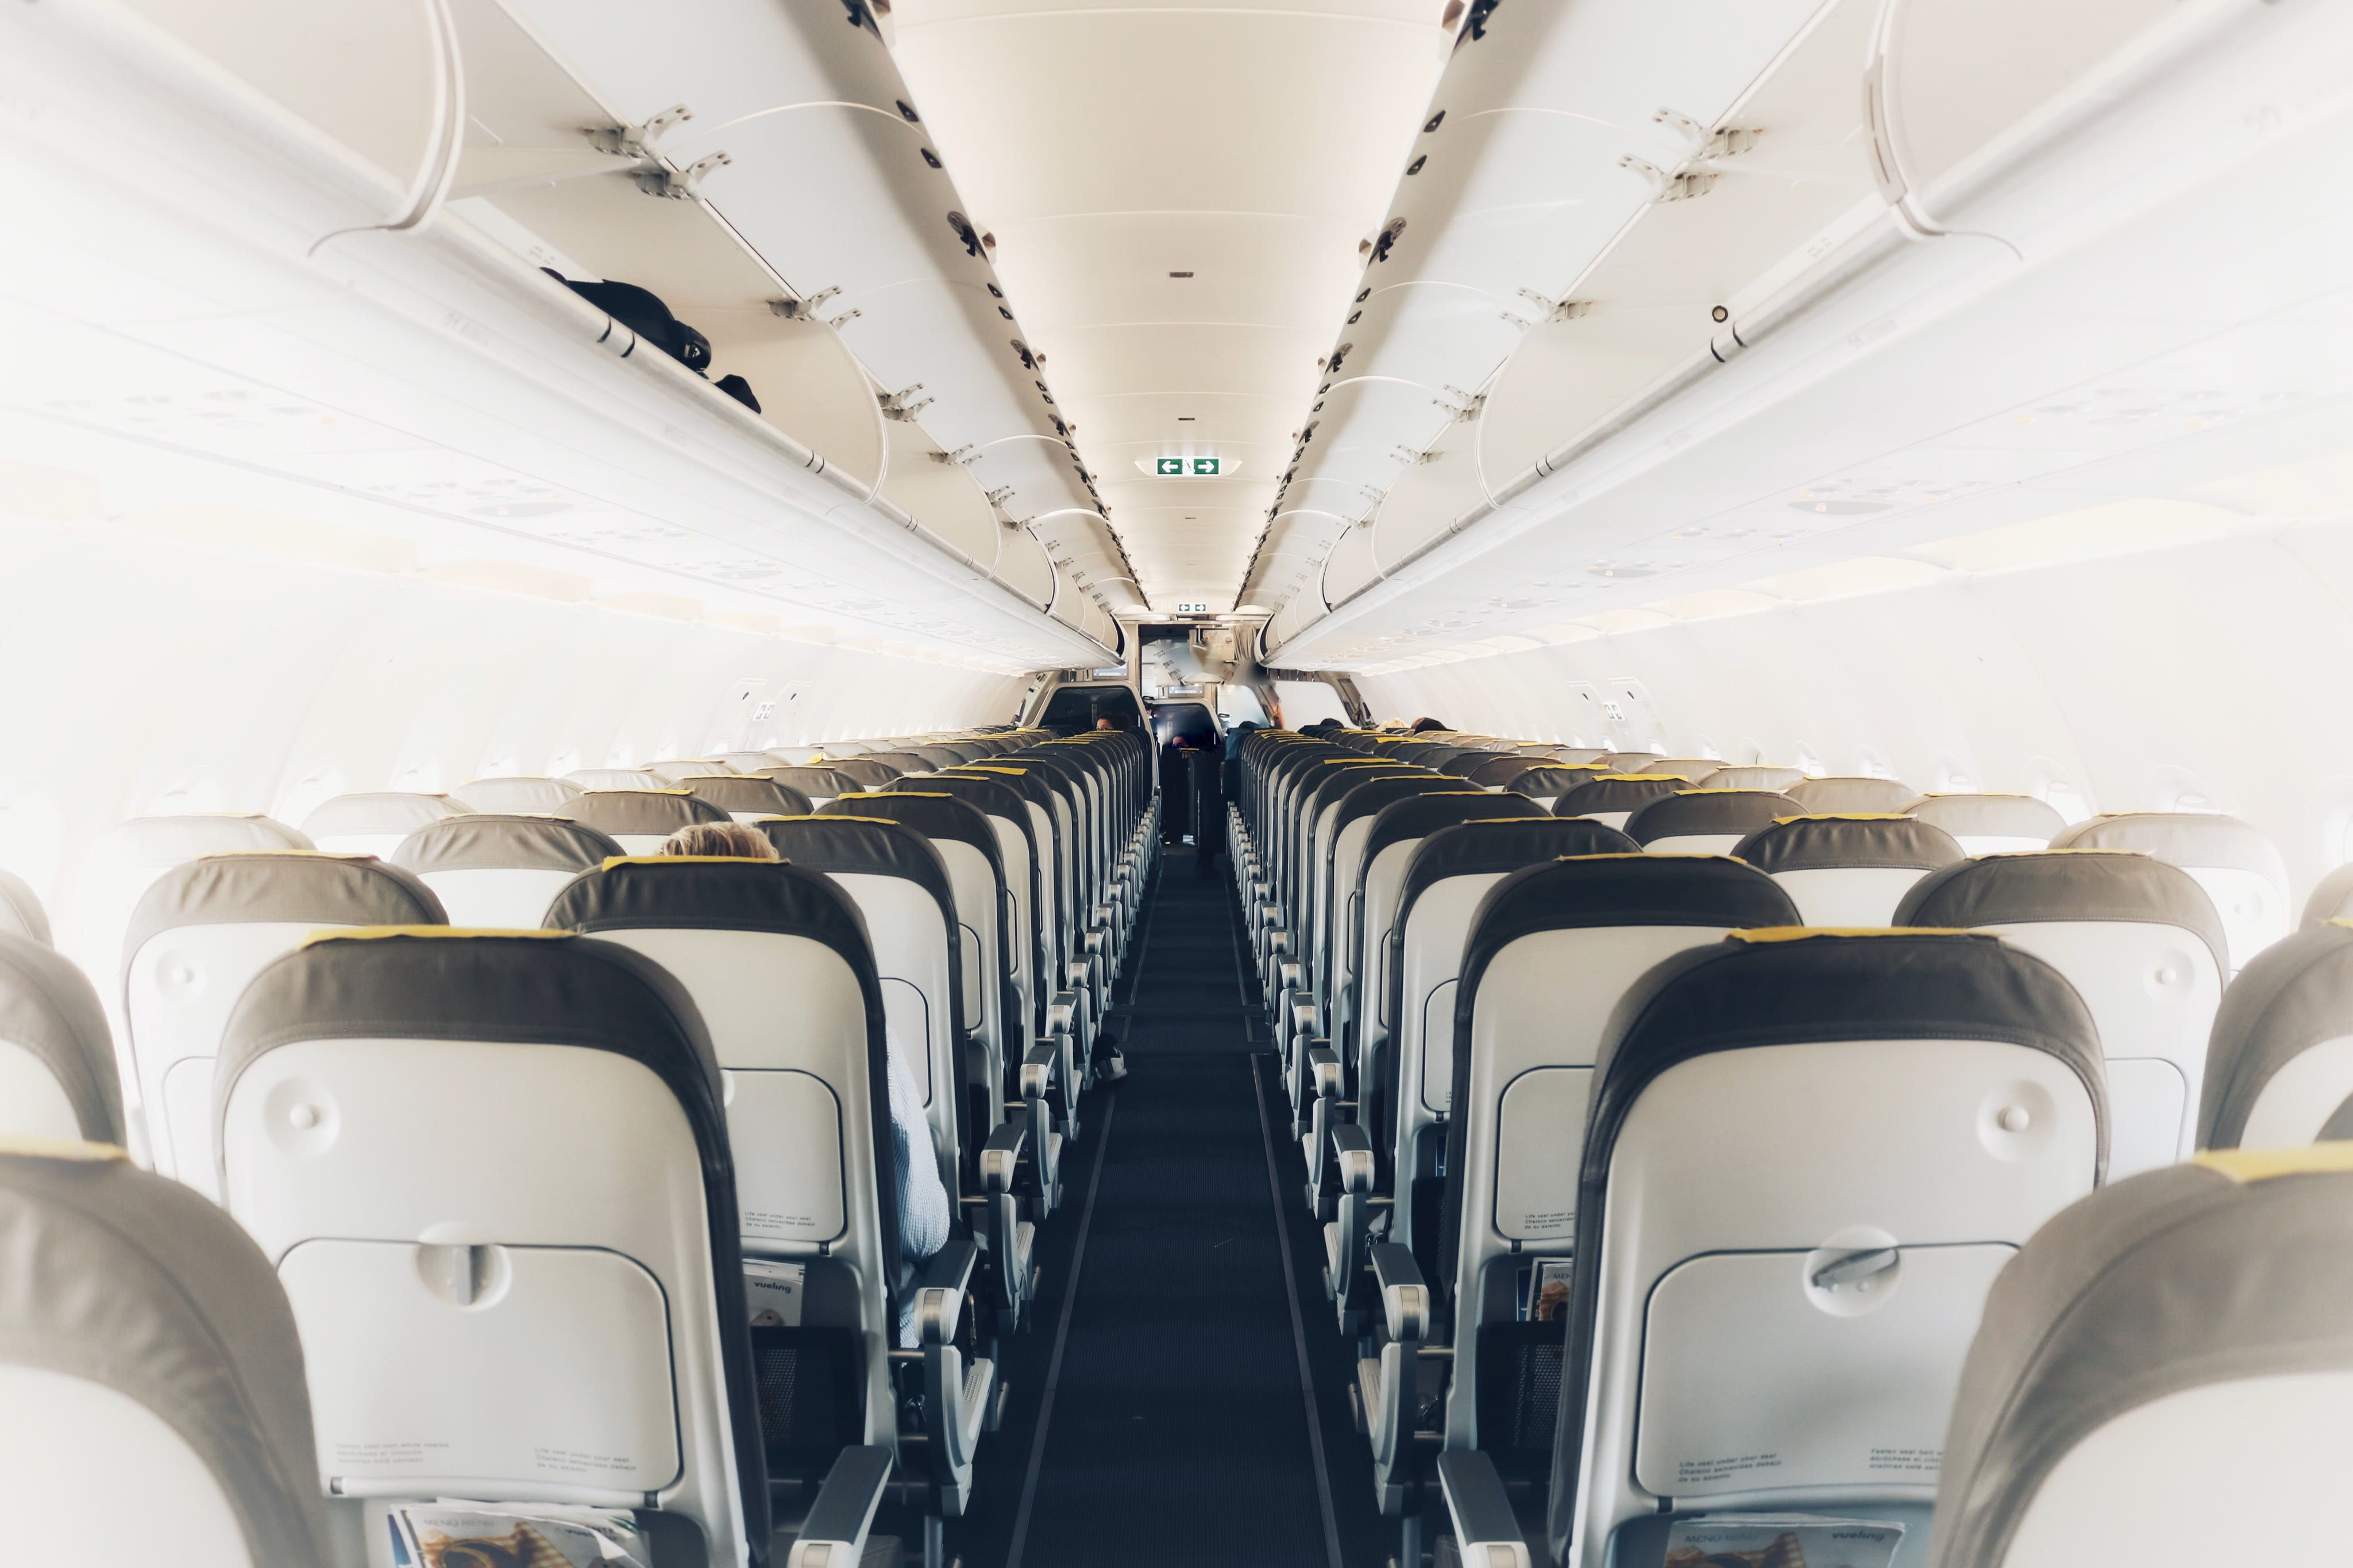 Many thought airfares would spike in the age of coronavirus. That's not happening yet